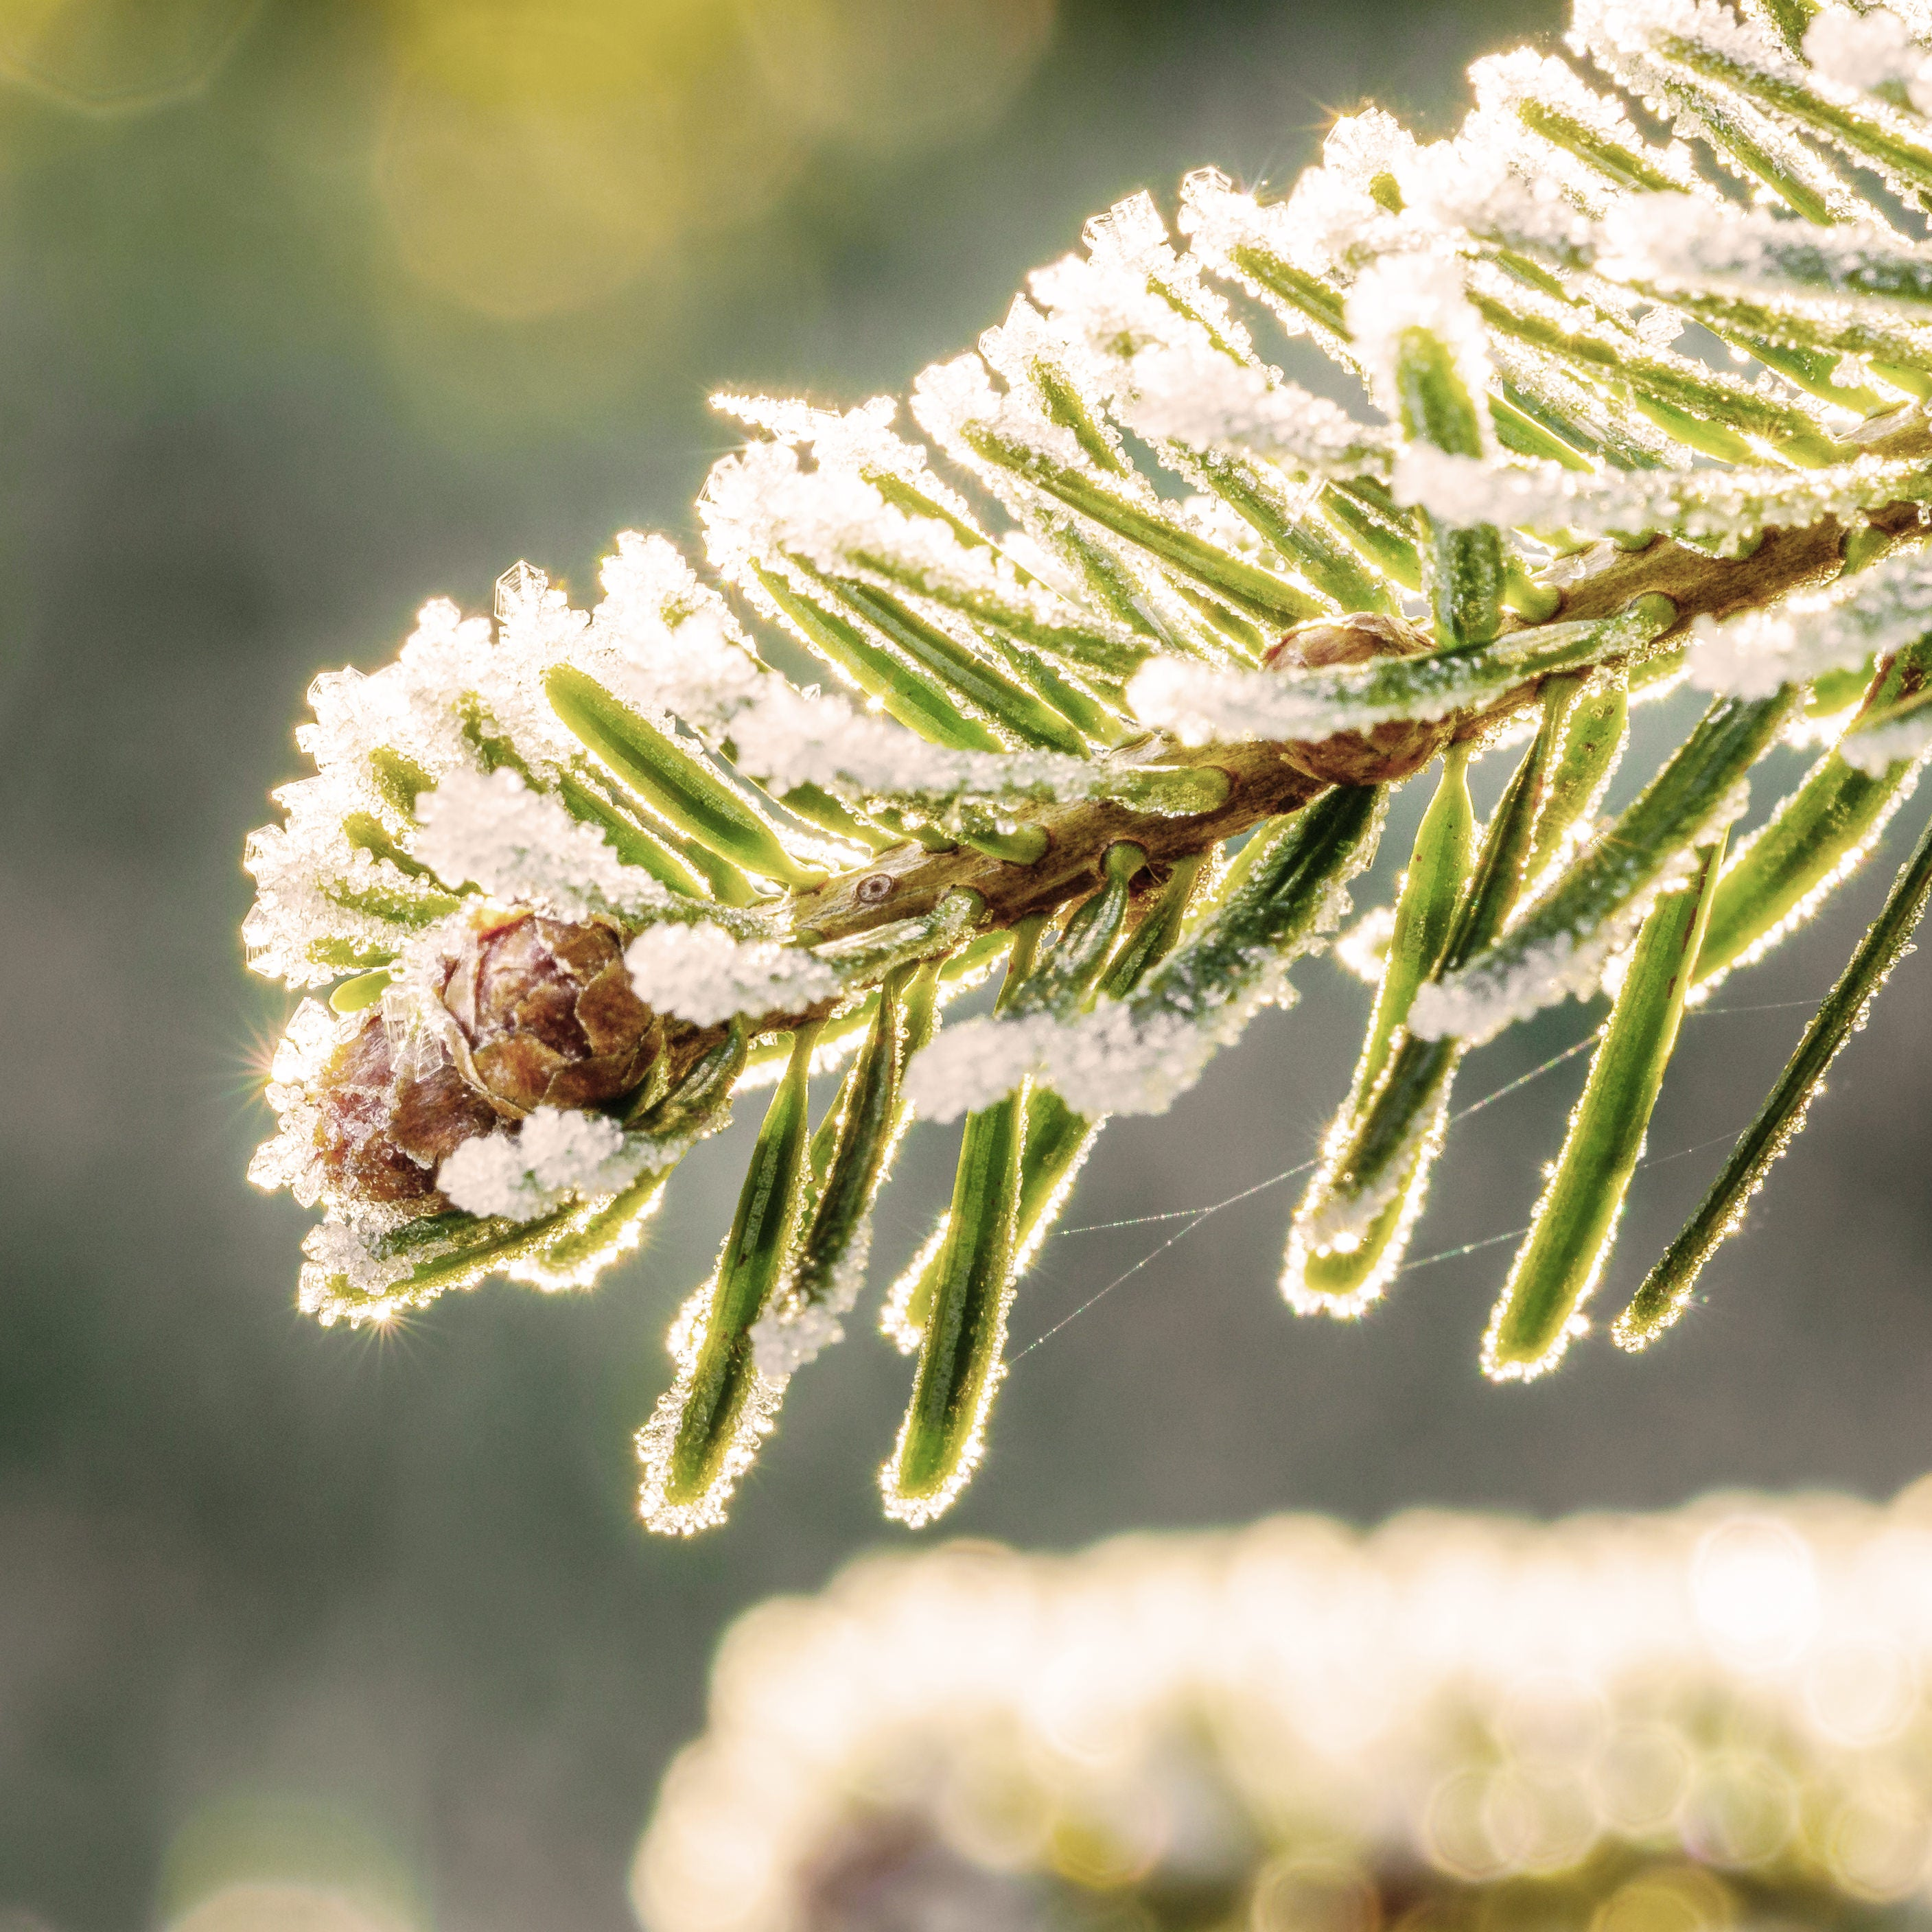 An extreme close up of Canadian Balsam Fir needles, the essential oil is an ingredient in many all natural Rocky Mountain Soap Company products.